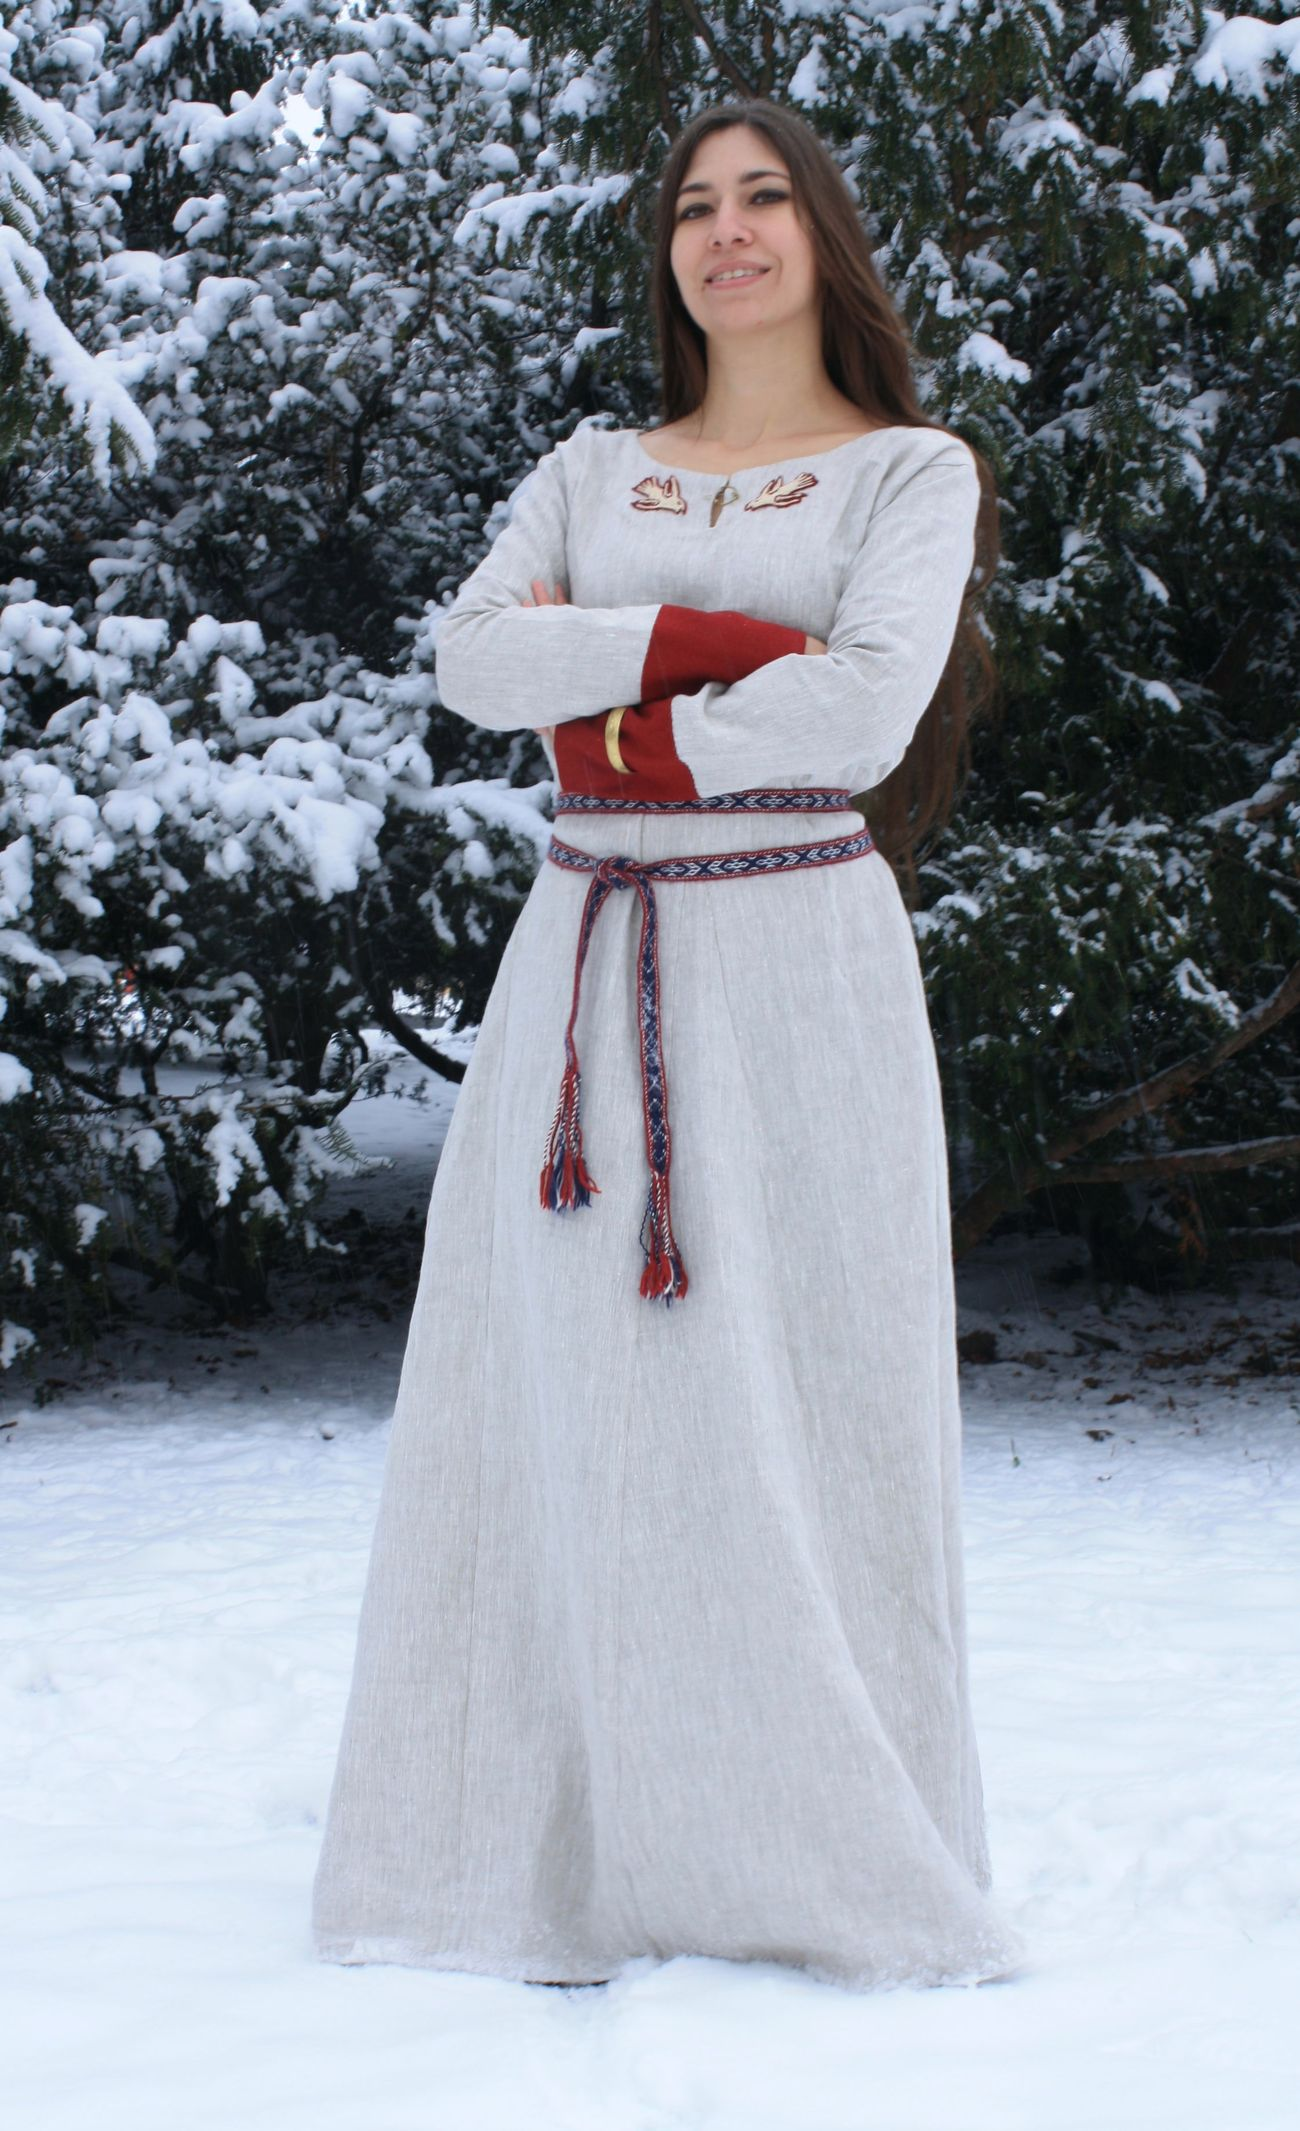 EARLY MEDIEVAL VIKING DRESS